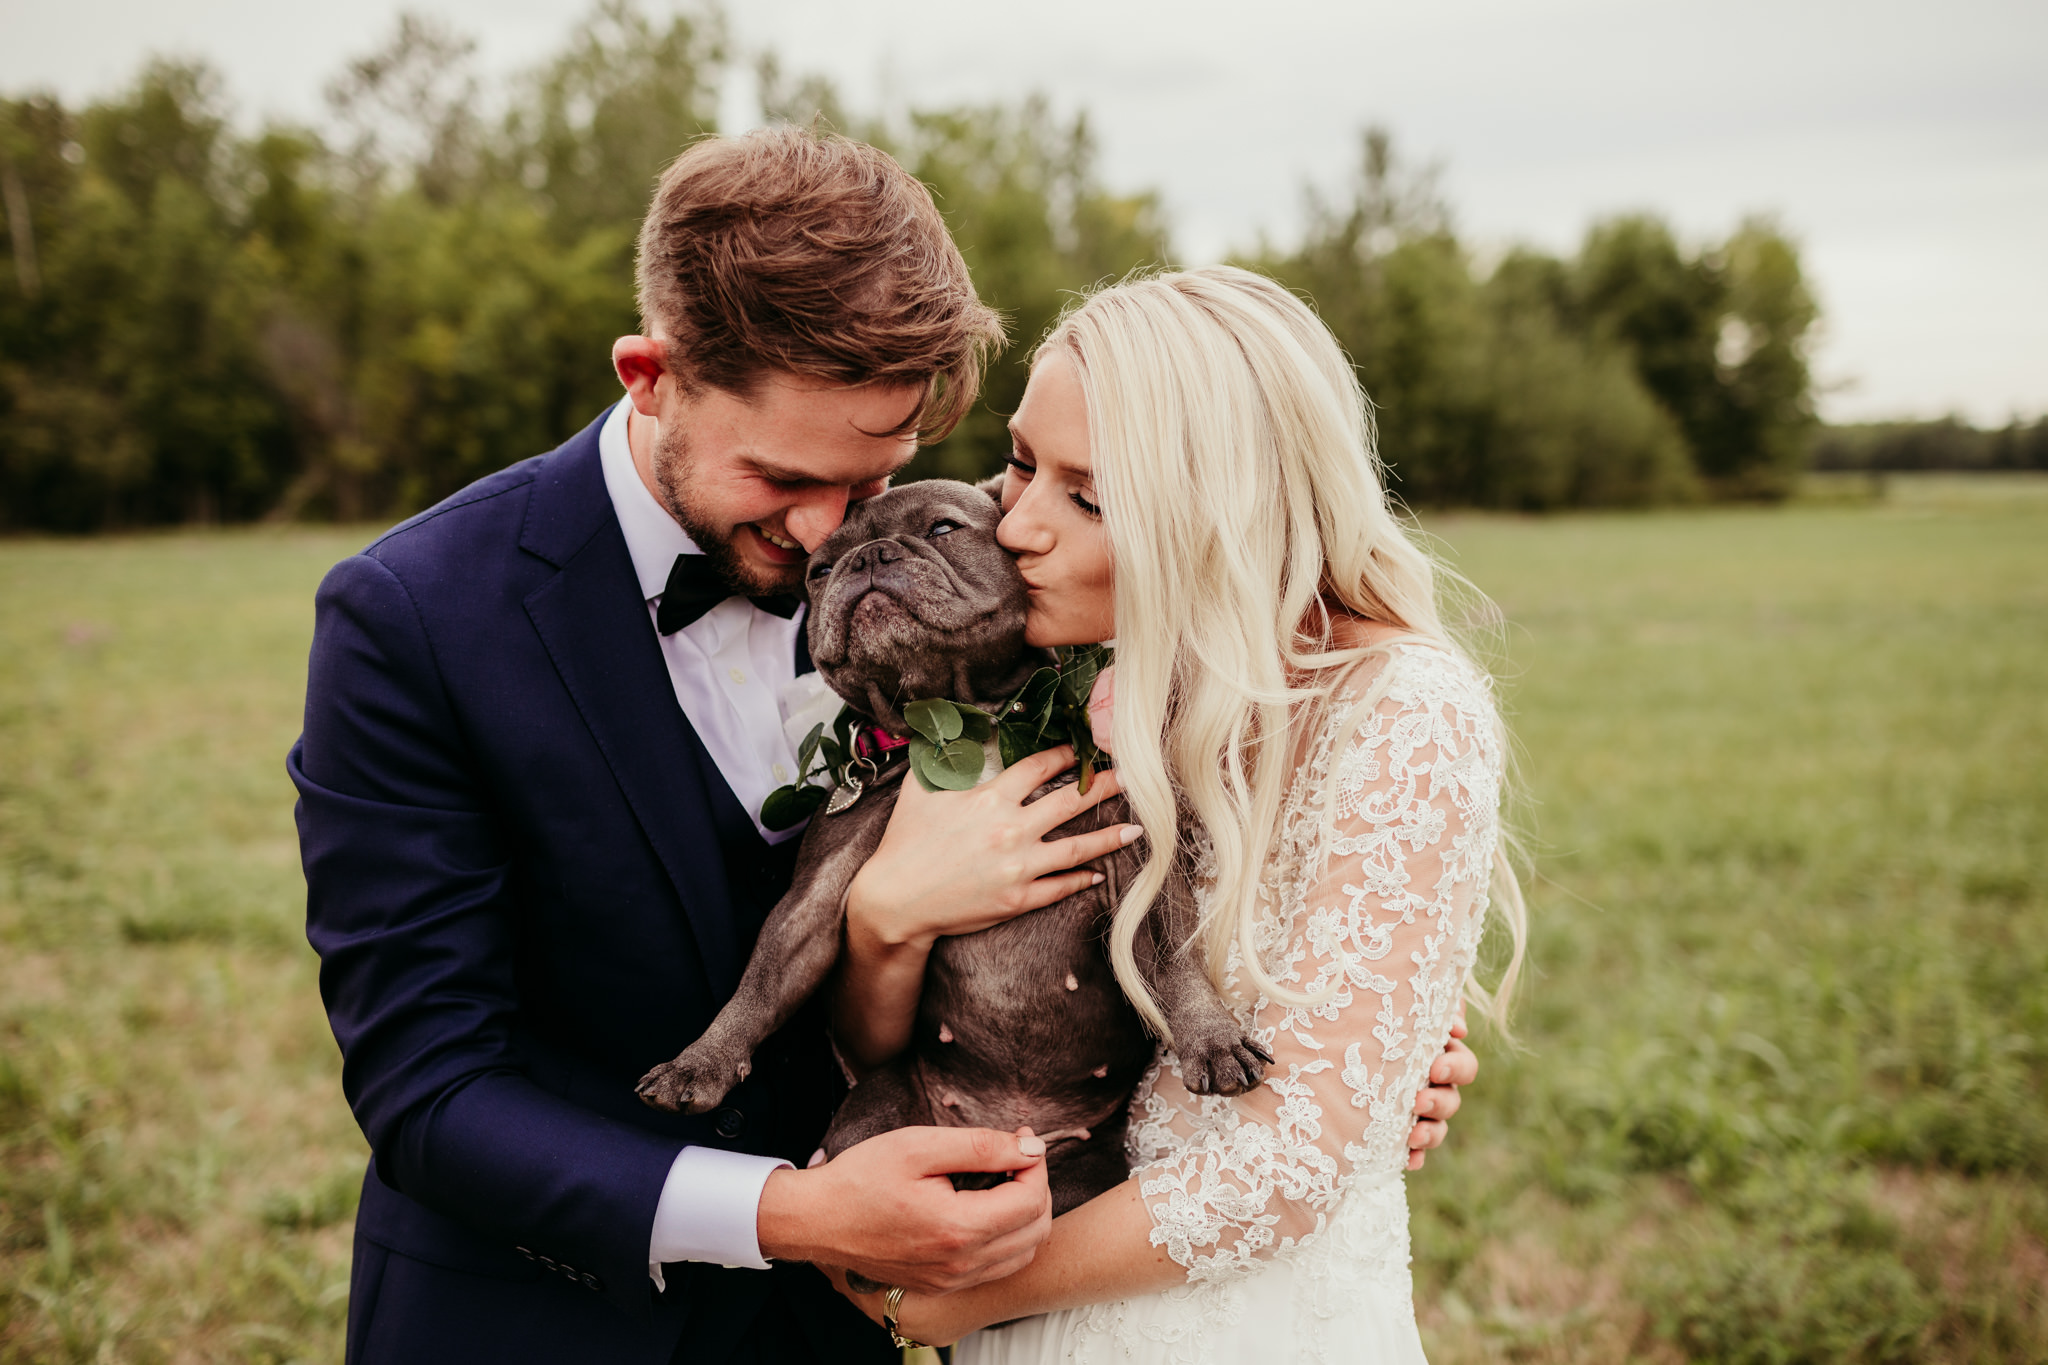 bride and groom kissing a dog they are holding while standing in a field